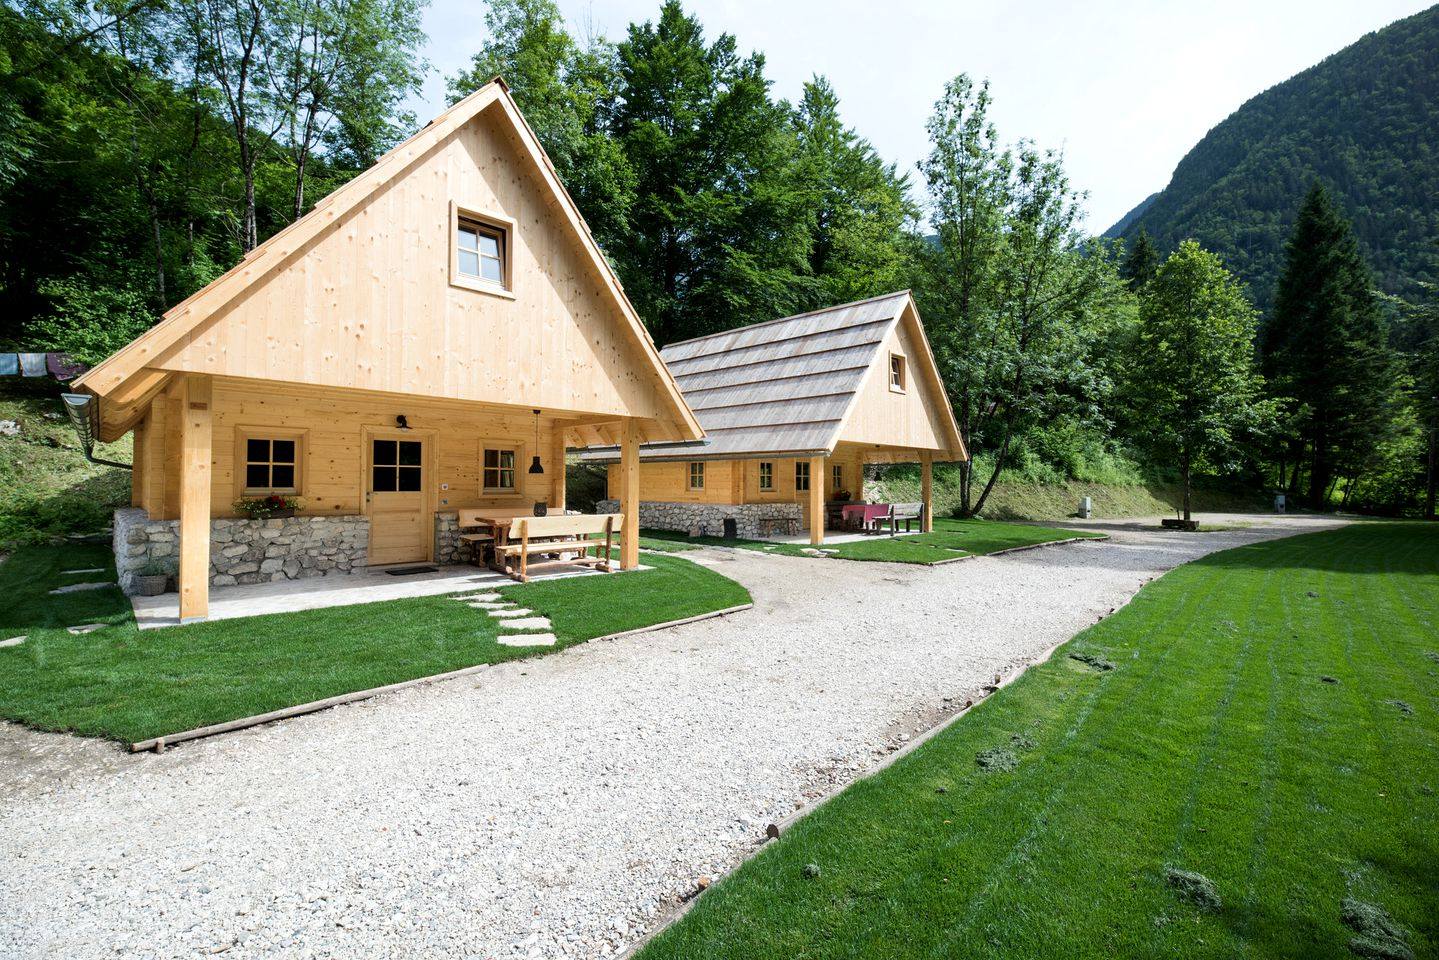 This Slovenia cabin is perfect for an adventurous retreat in nature.